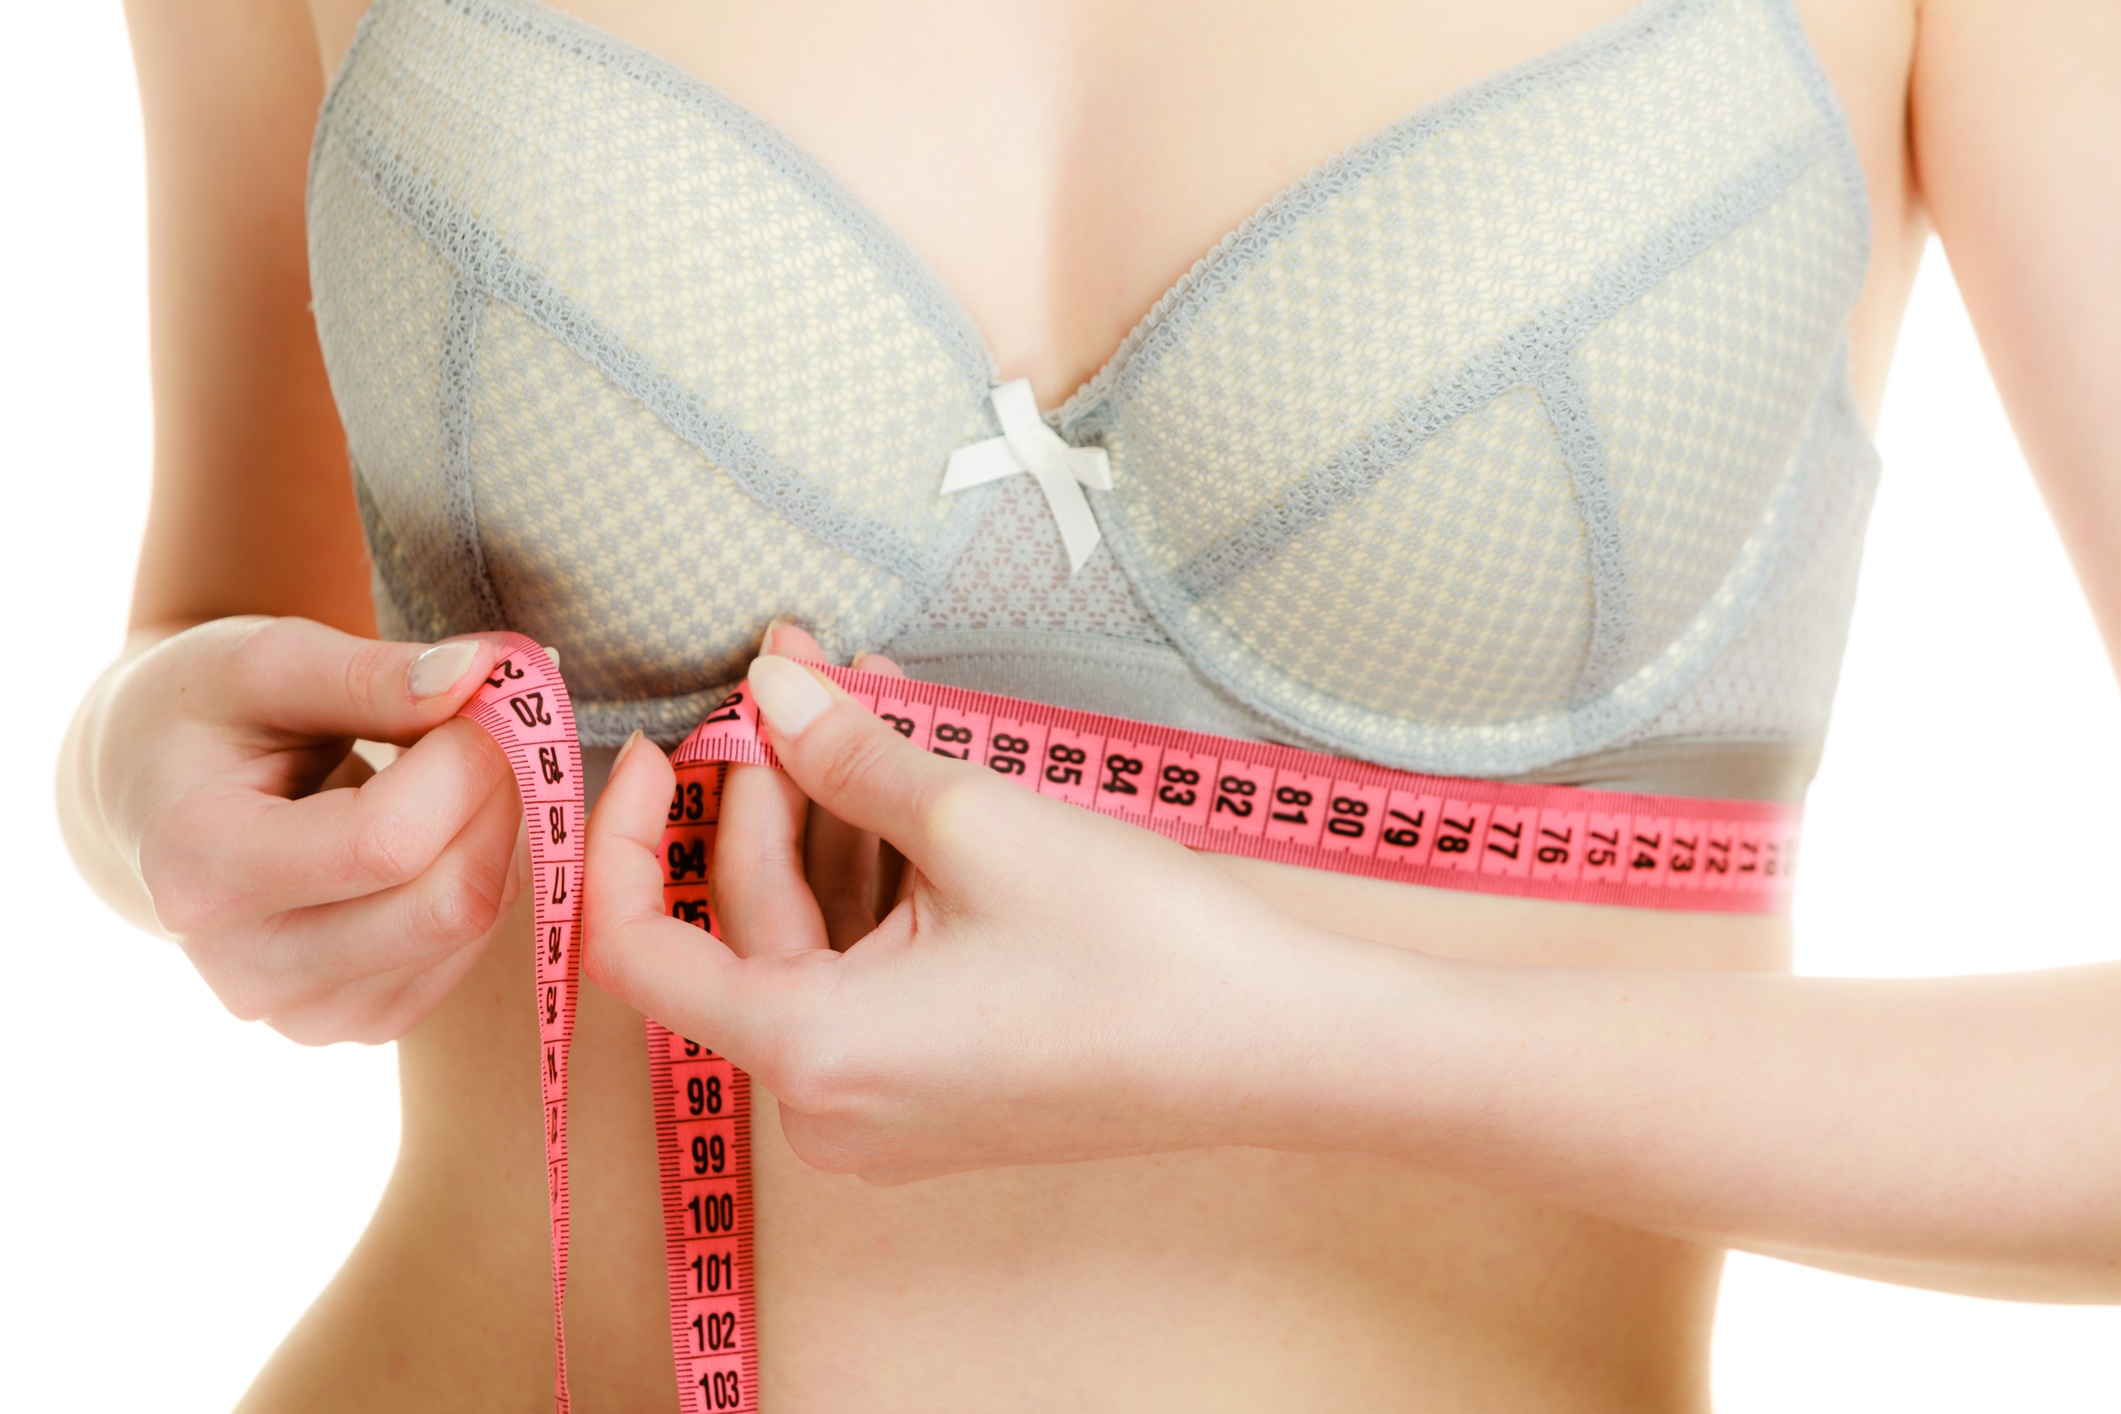 Getting measured for a bra (Thinkstock/PA)